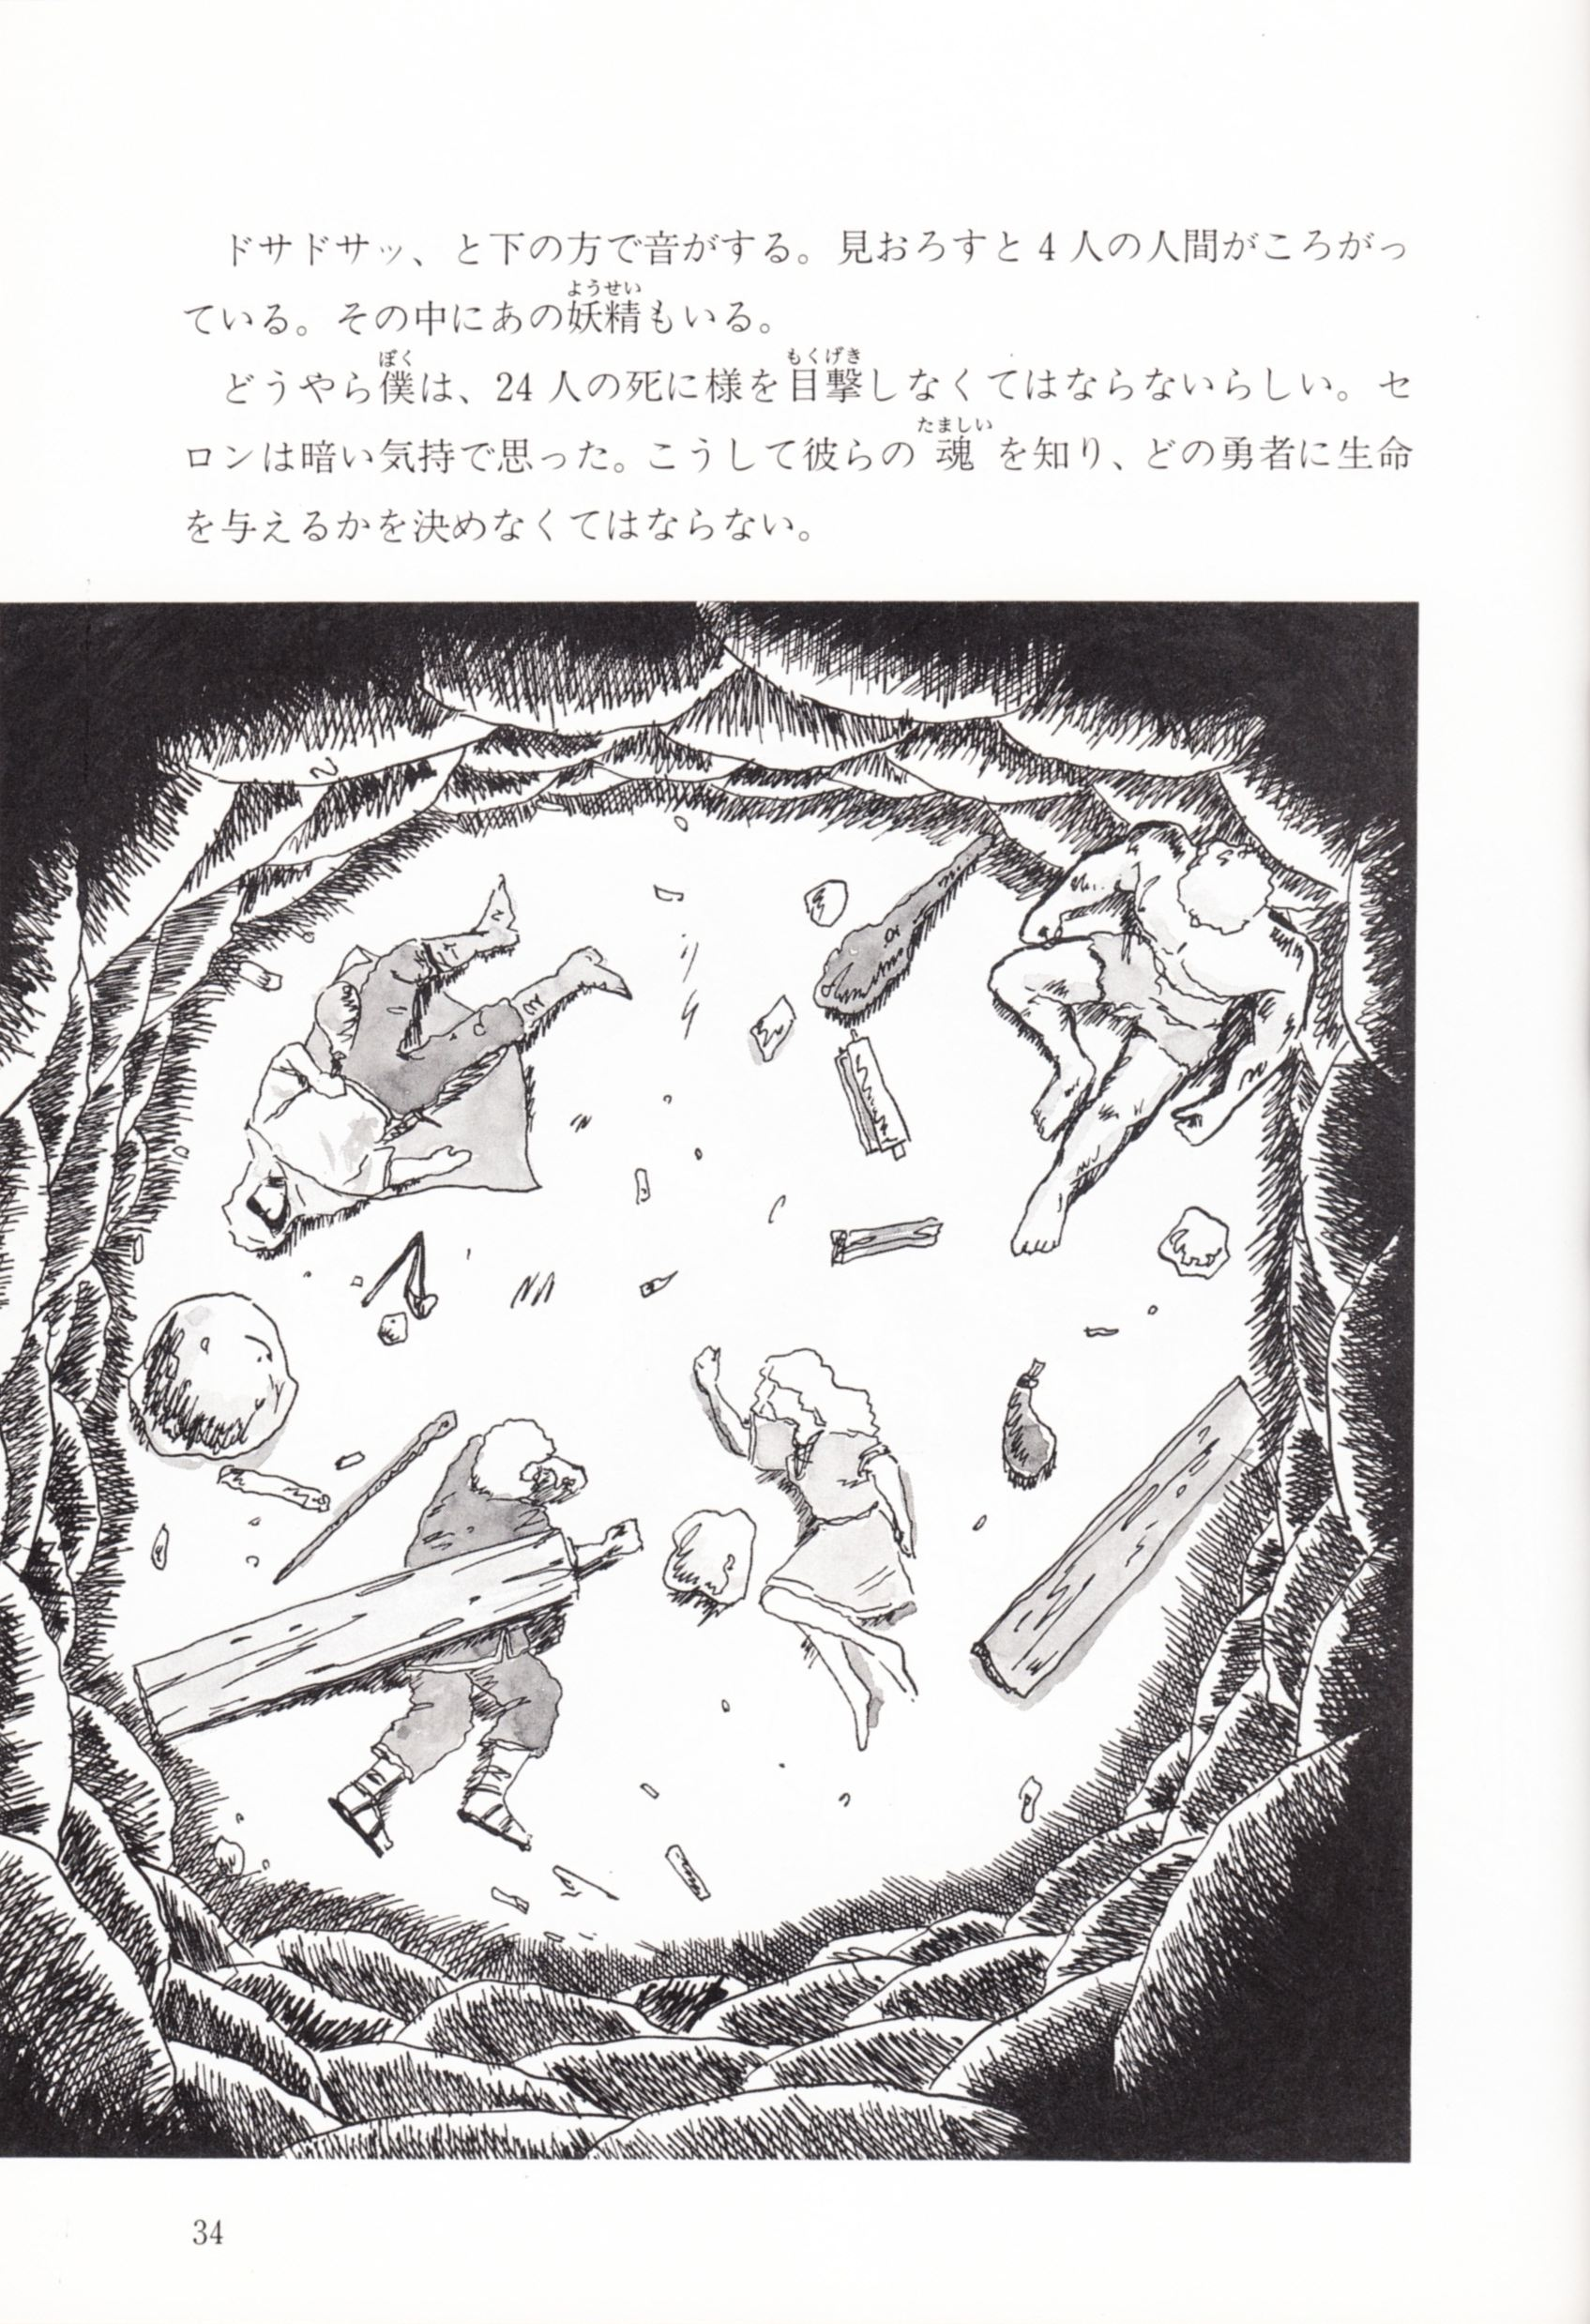 Game - Dungeon Master - JP - FM Towns - Story Guide - Page 036 - Scan